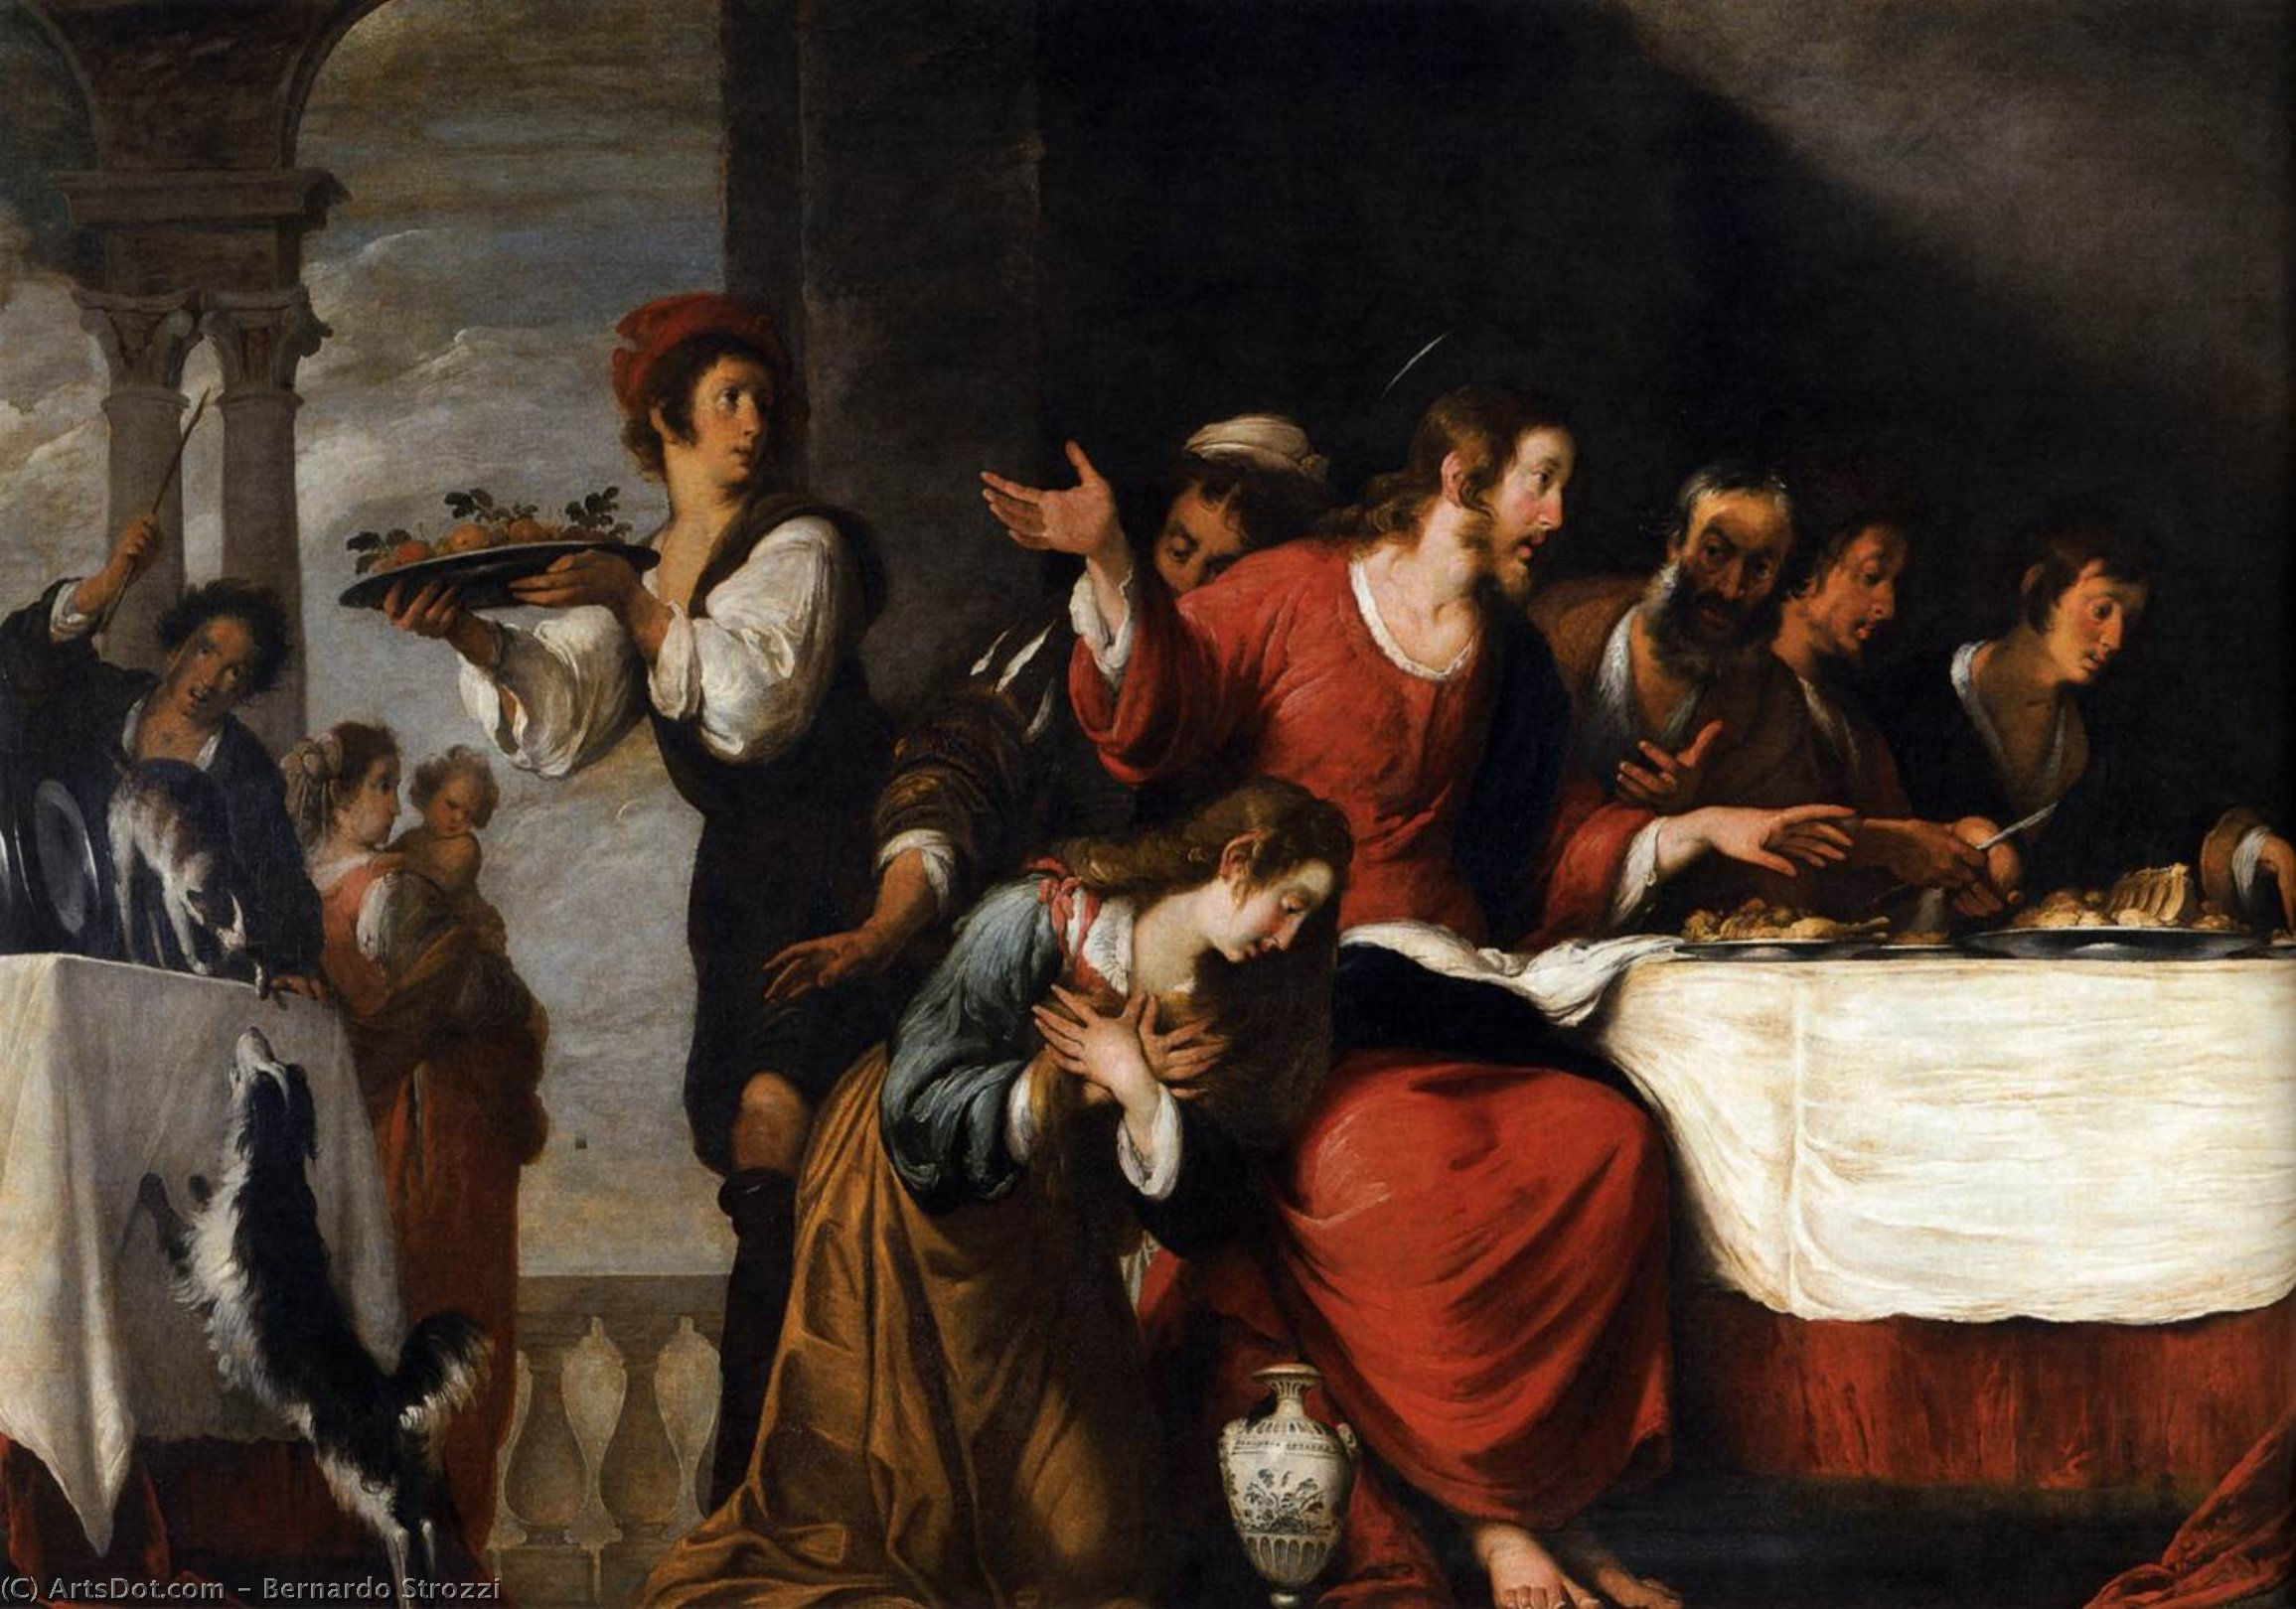 Wikioo.org - The Encyclopedia of Fine Arts - Painting, Artwork by Bernardo Strozzi - Banquet at the House of Simon (detail)